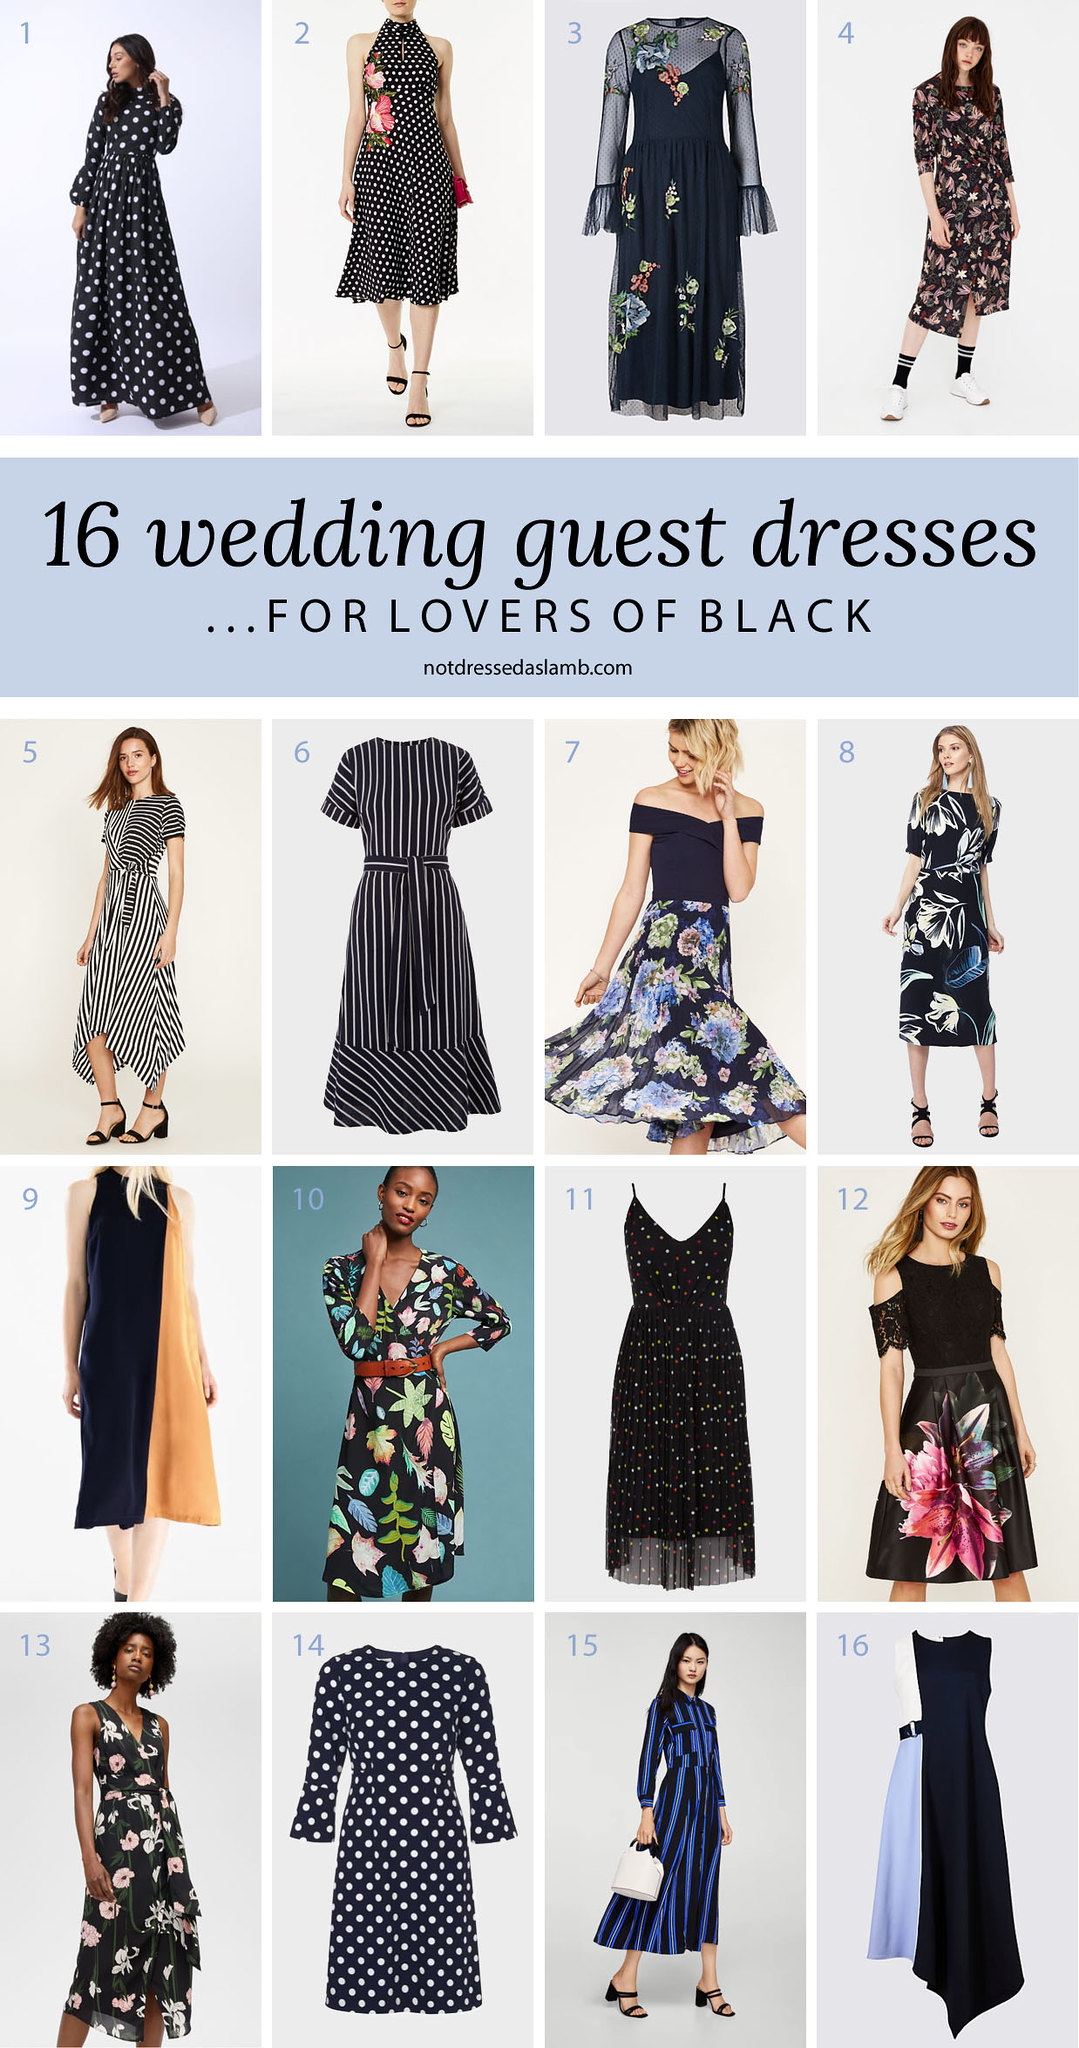 What to Wear to a Summer Wedding for All Shapes & Sizes: 16 Wedding Guest Dresses for Lovers of Black - Not Dressed As Lamb